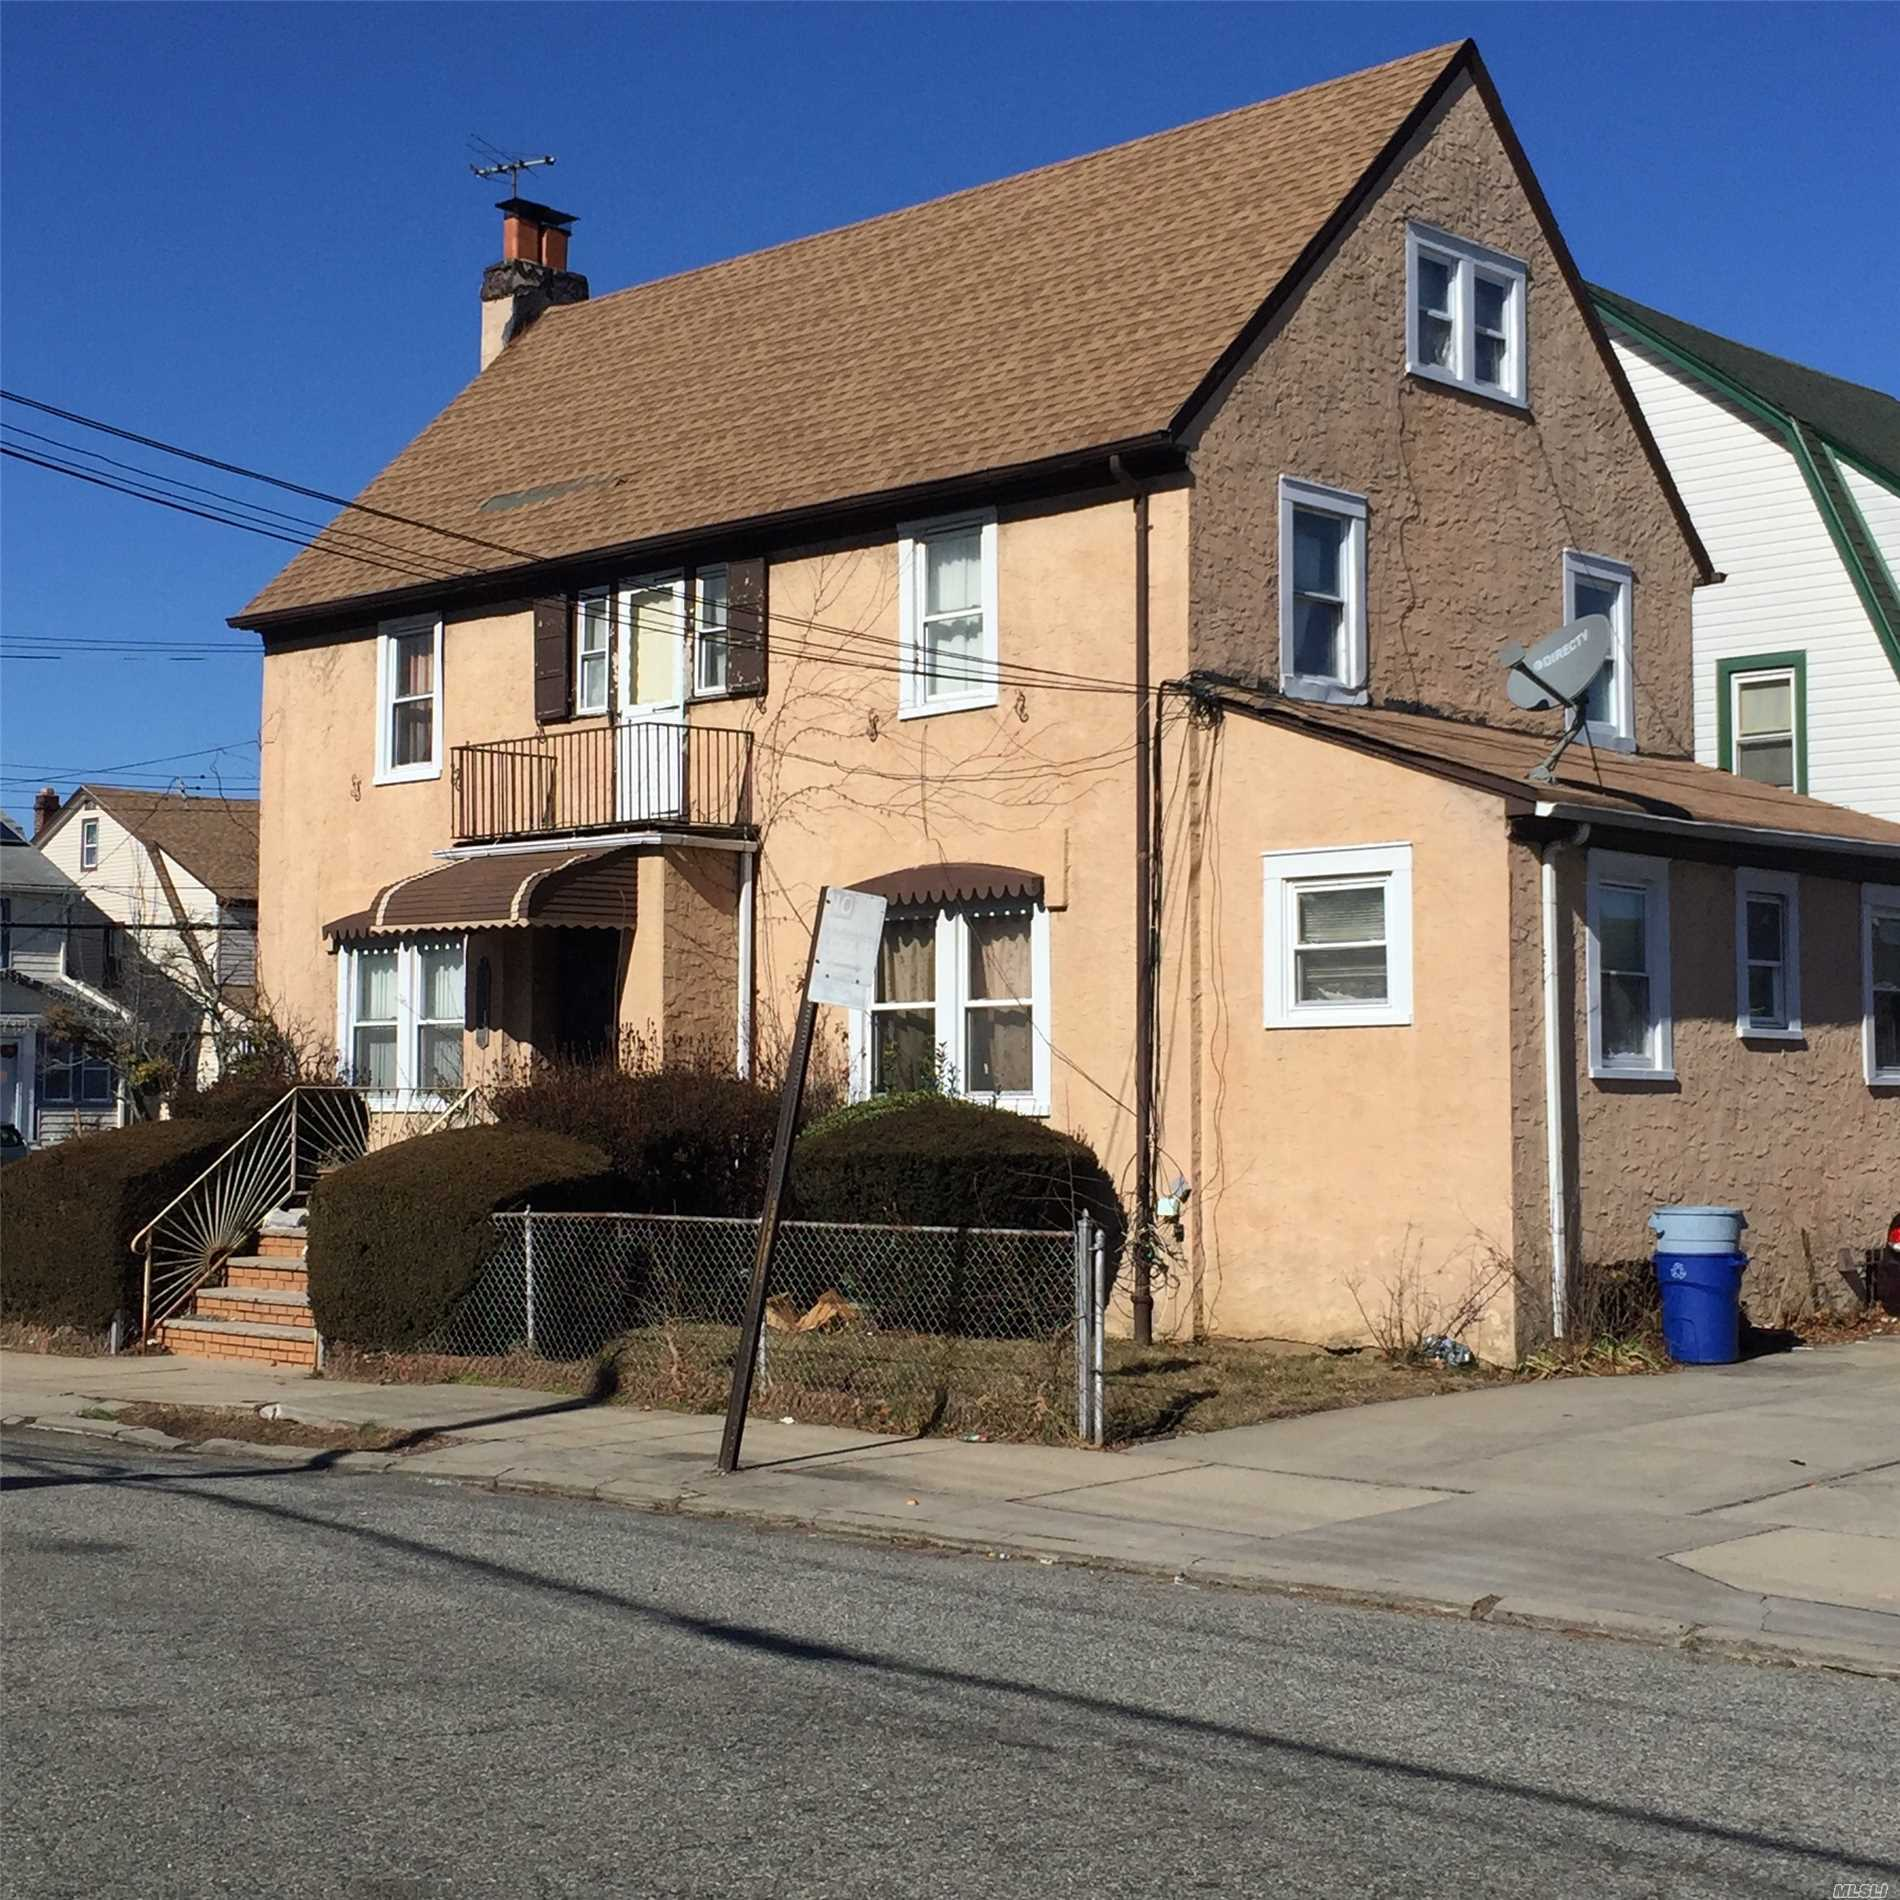 Single Family Colonial With Detached 1 Car Garage & Full Basement In Queens Village. Spacious Home With A Lot Of Potential!! Please Submit All Offers With Proof Of Funds, Thank You.